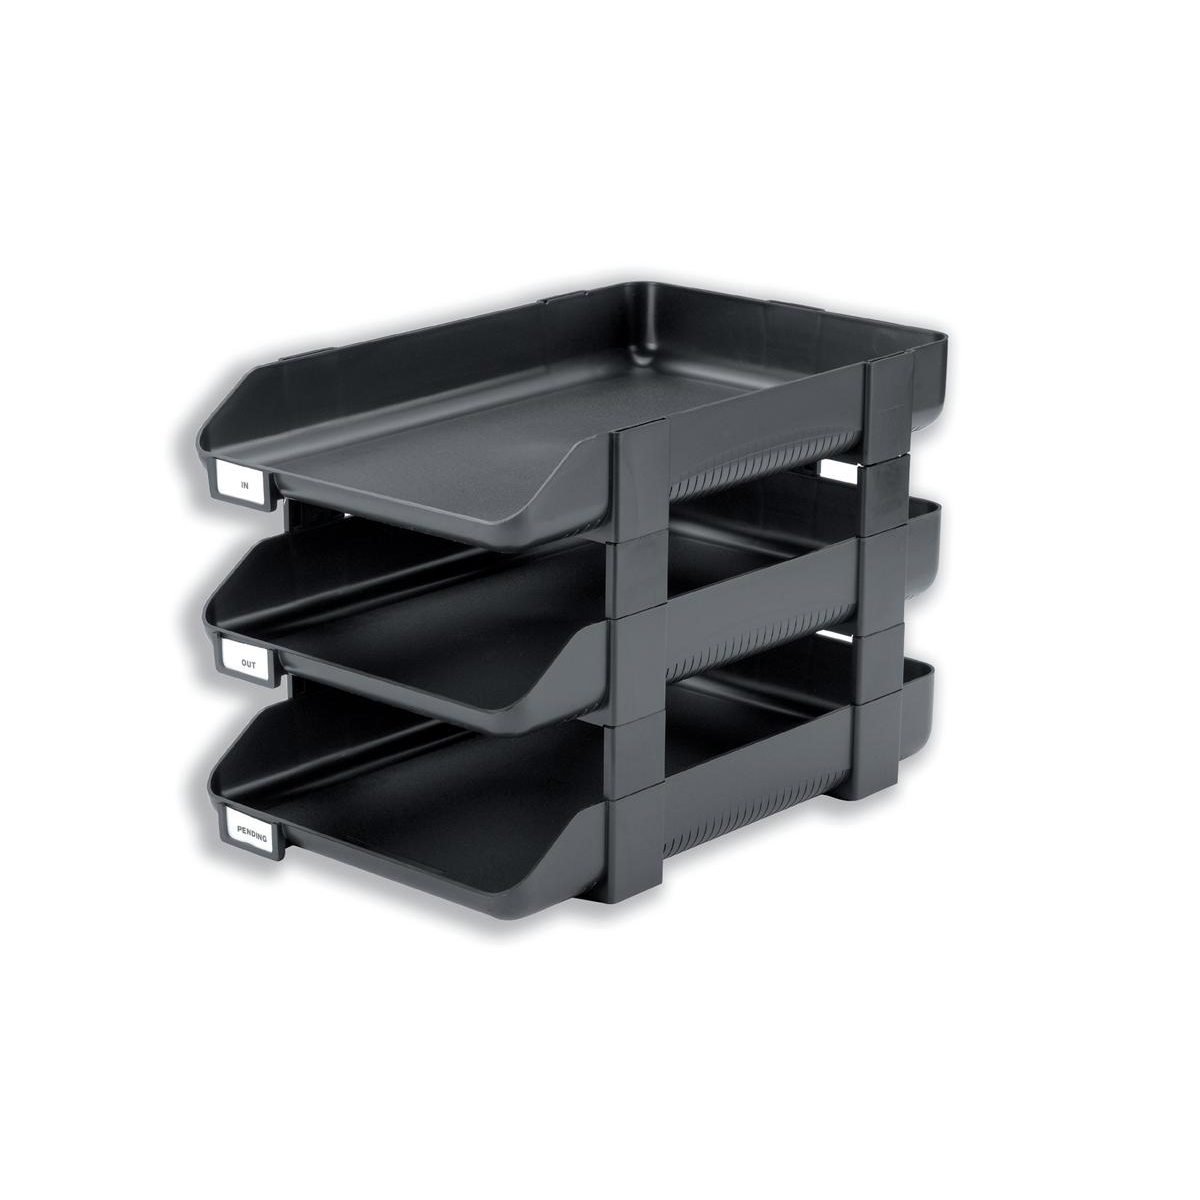 Rexel Agenda Classic 55 Letter Tray Stackable Internal W382xH246x55mm Charcoal Ref 25206